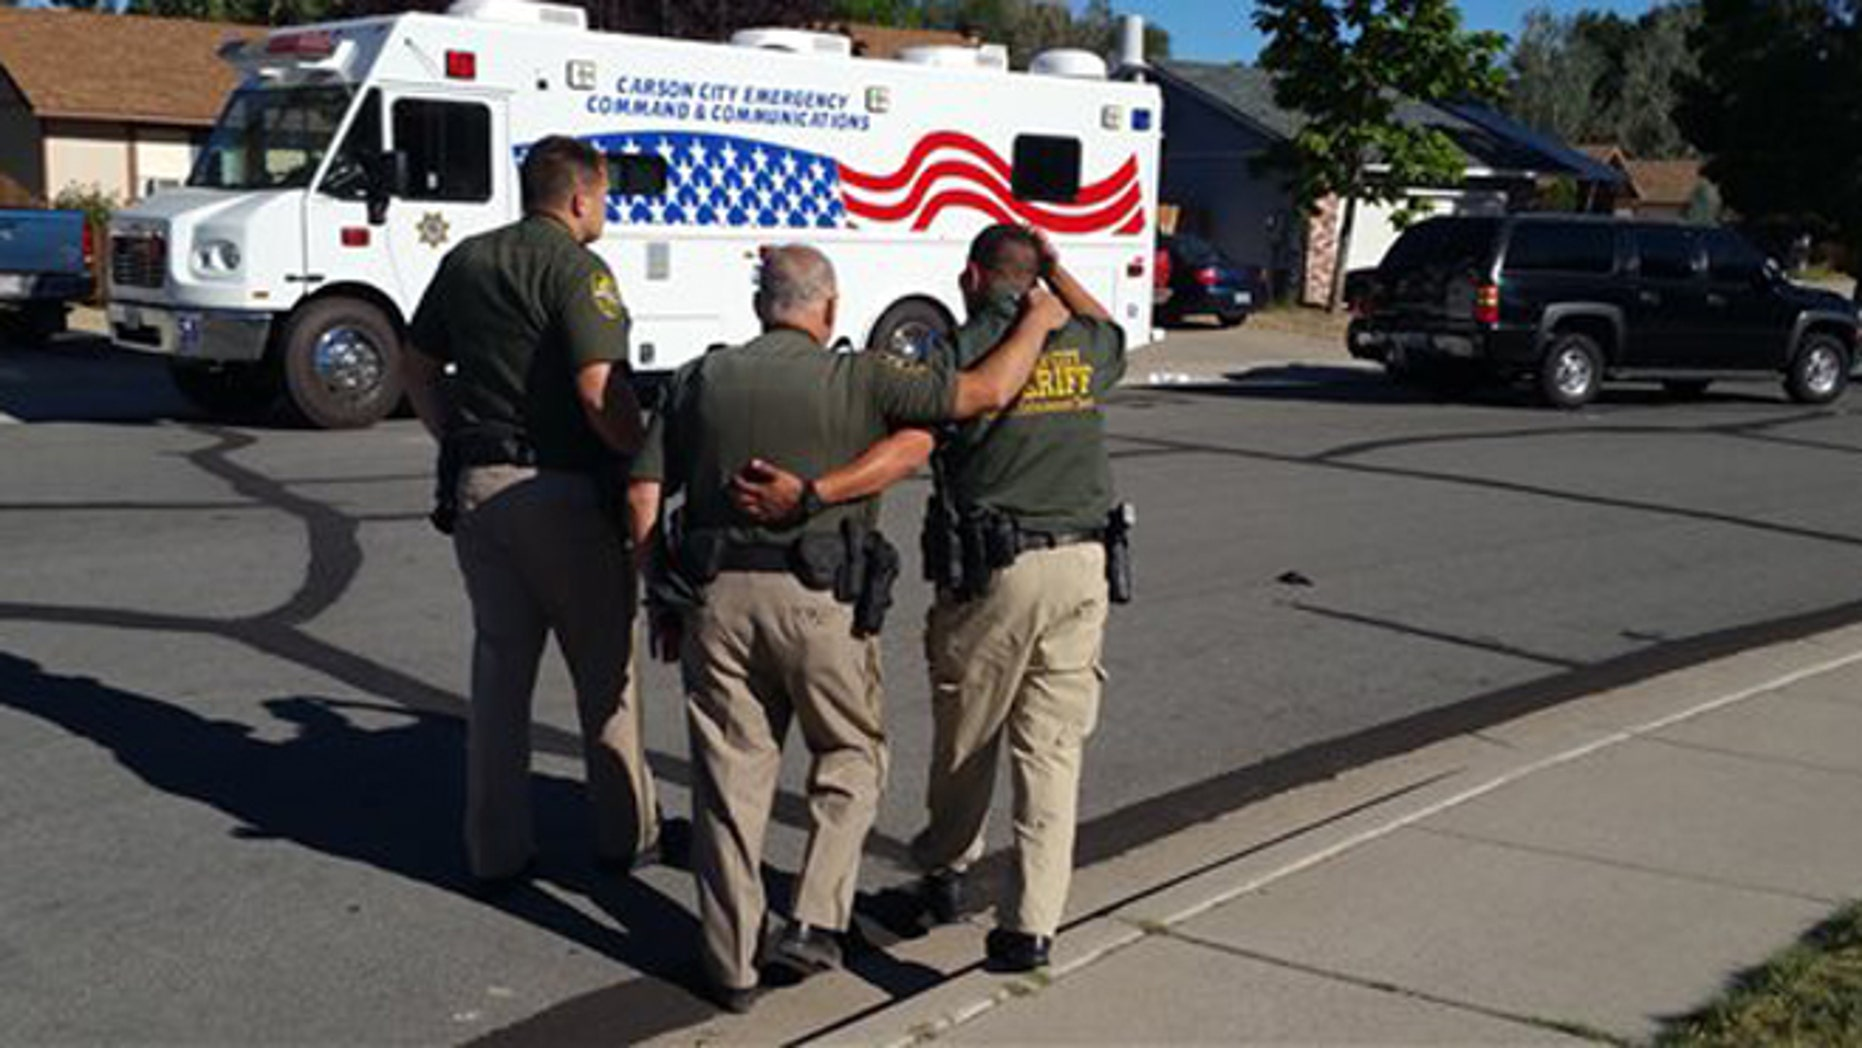 Aug. 15, 2015: Carson City Sheriff's Department deputies comfort each other outside the scene of a fatal shooting in Carson City, Nev., that left an officer and a suspect dead.